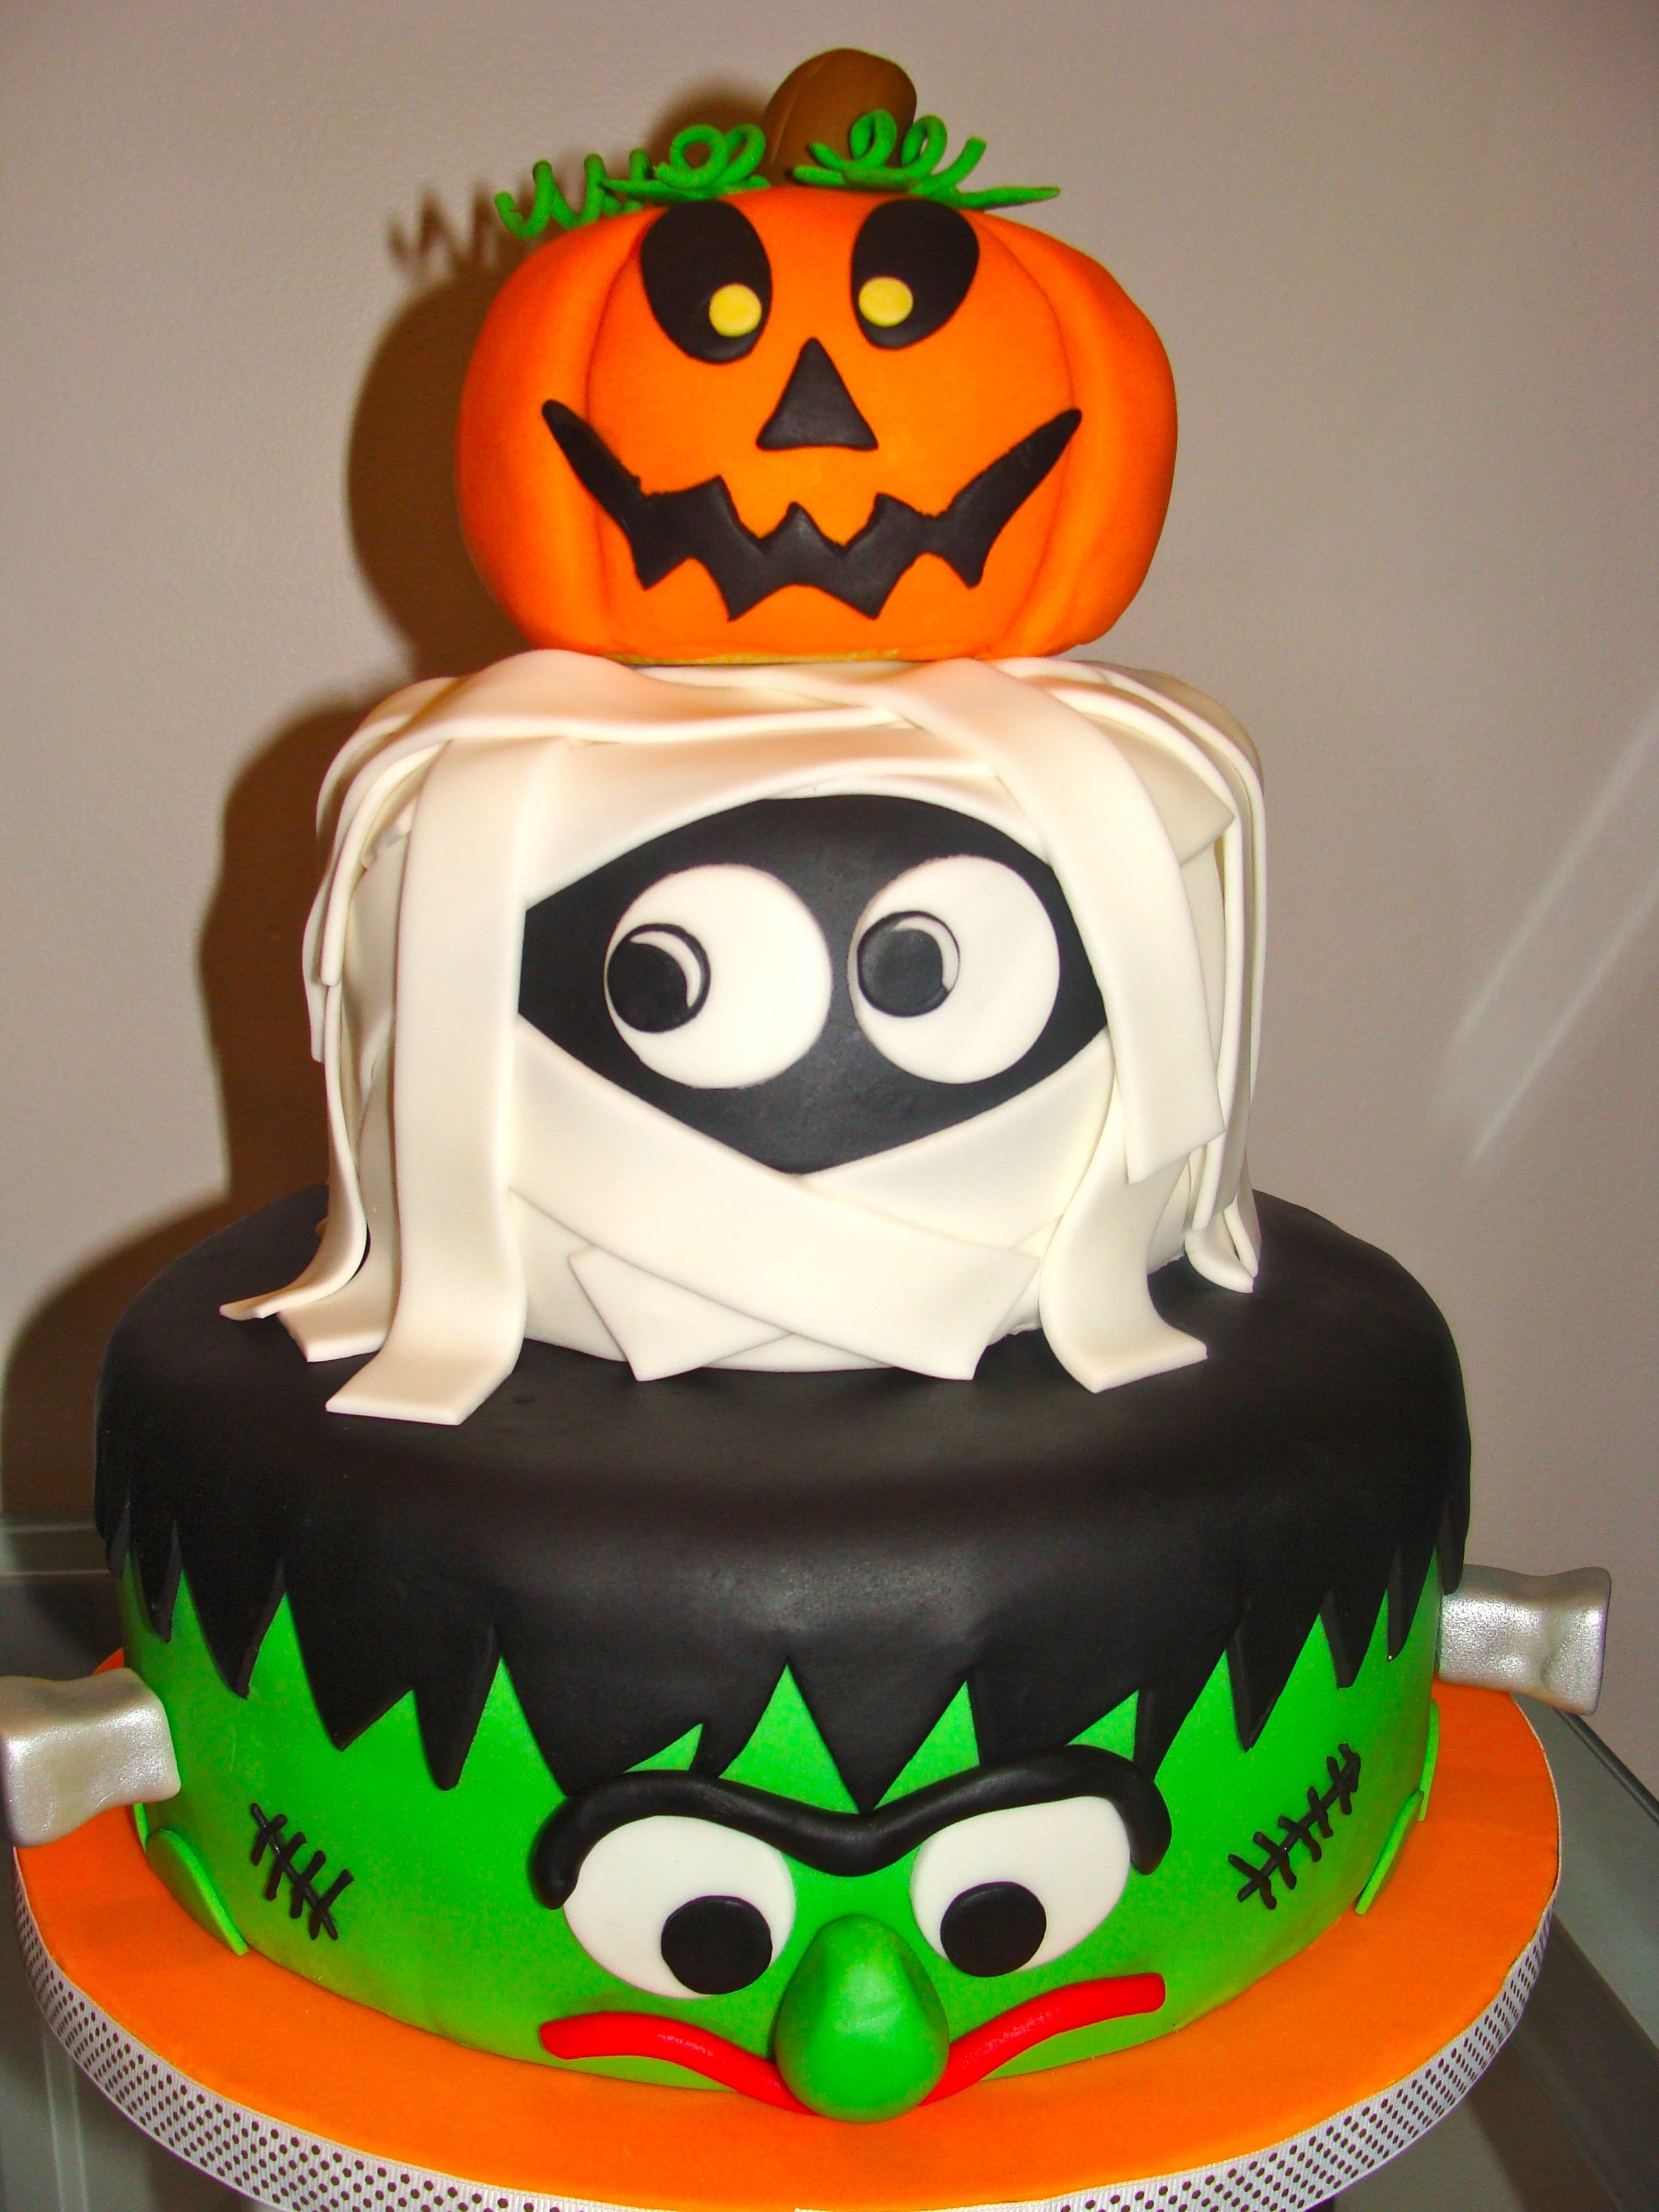 Halloween Birthday Cake Ideas  21 Amazing Halloween Cake Ideas Halloween cakes